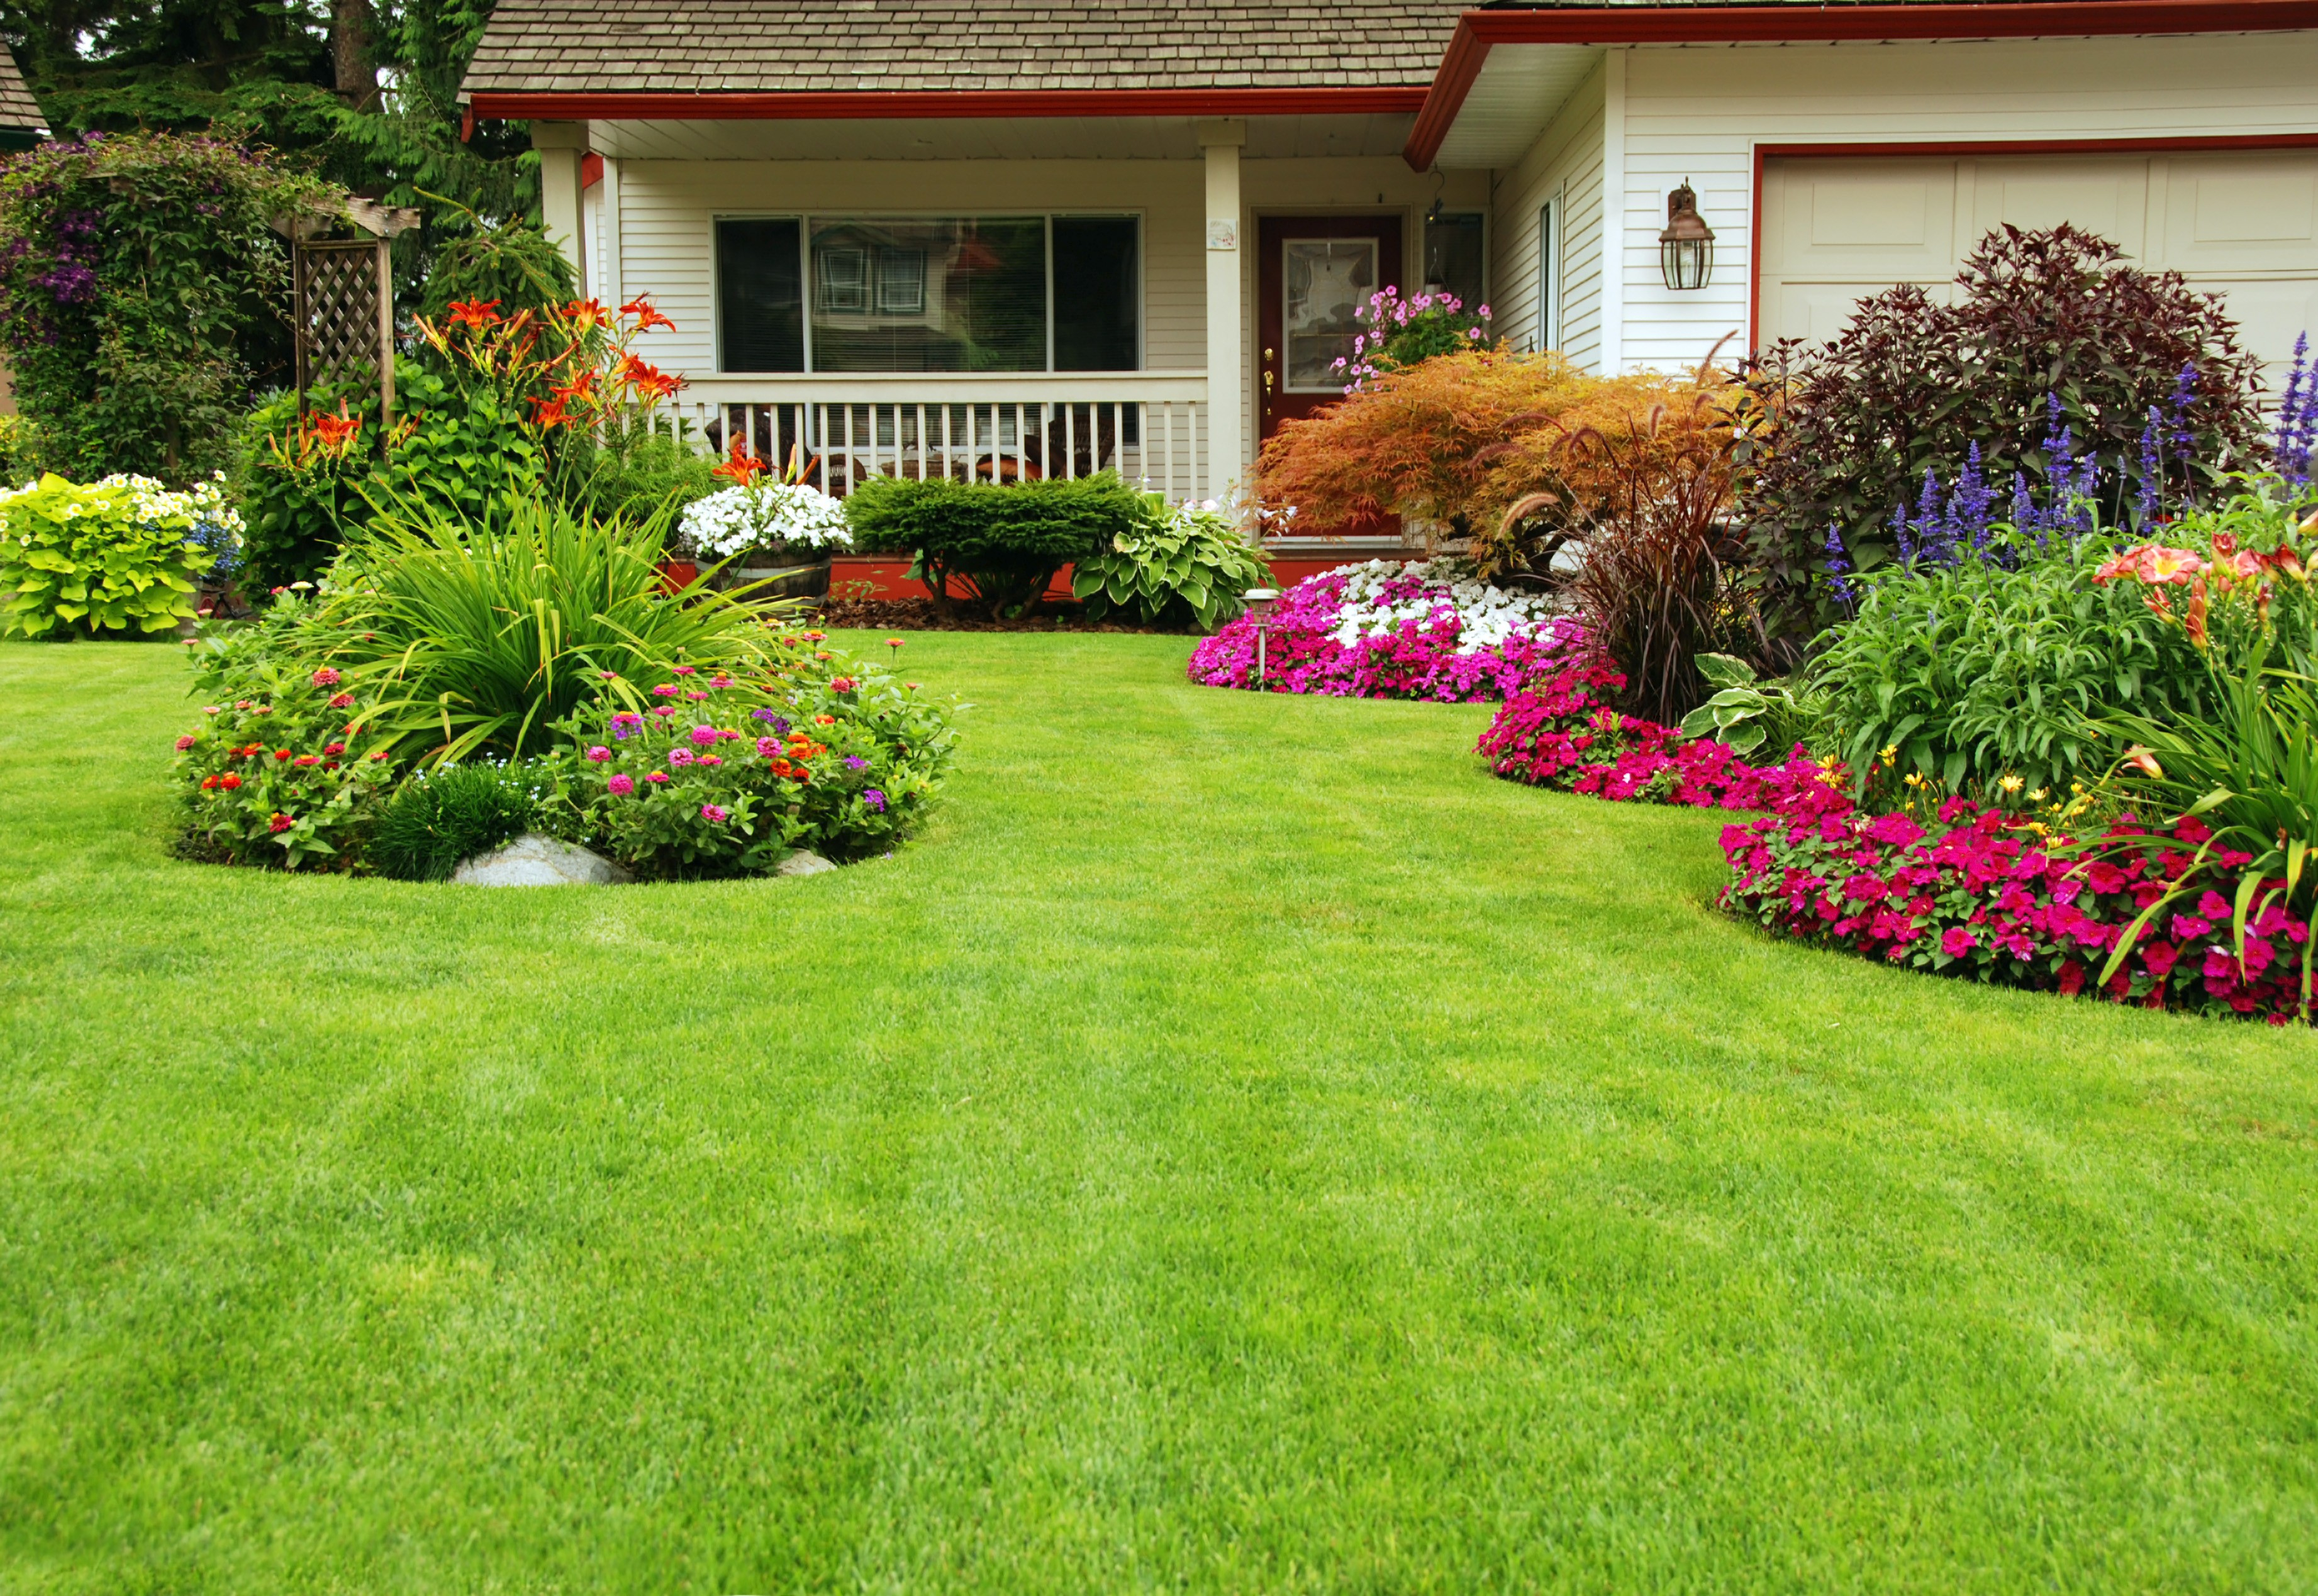 50 Best Backyard Landscaping Ideas And Designs In 2019 throughout Home Backyard Landscaping Ideas